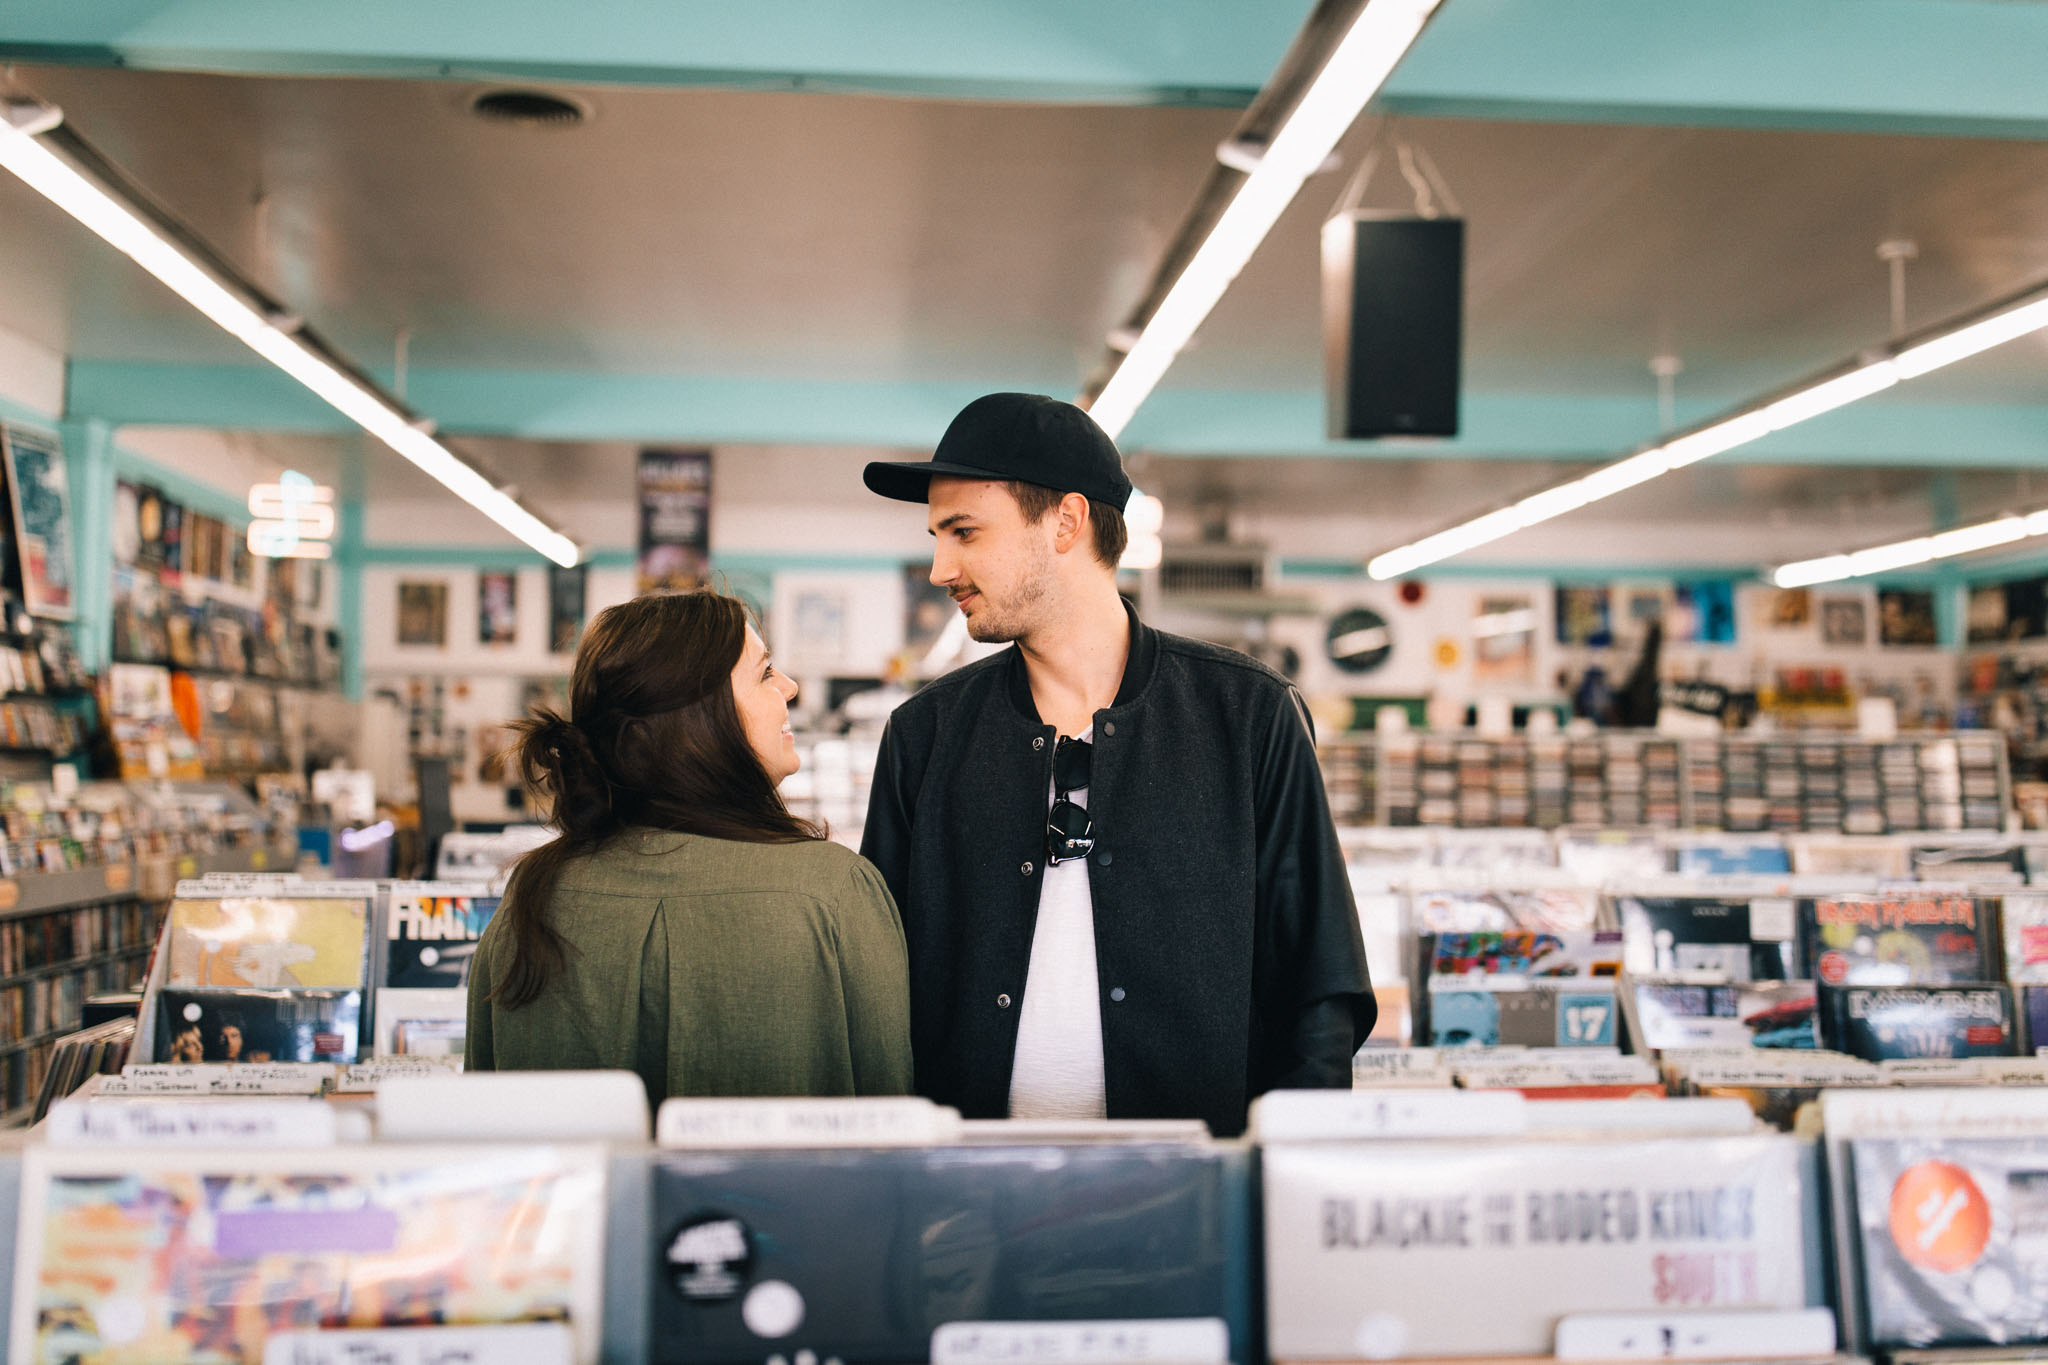 2018_02_02 Bryce and April Record Store Session Blog Edited Full Resolution 0009.jpg